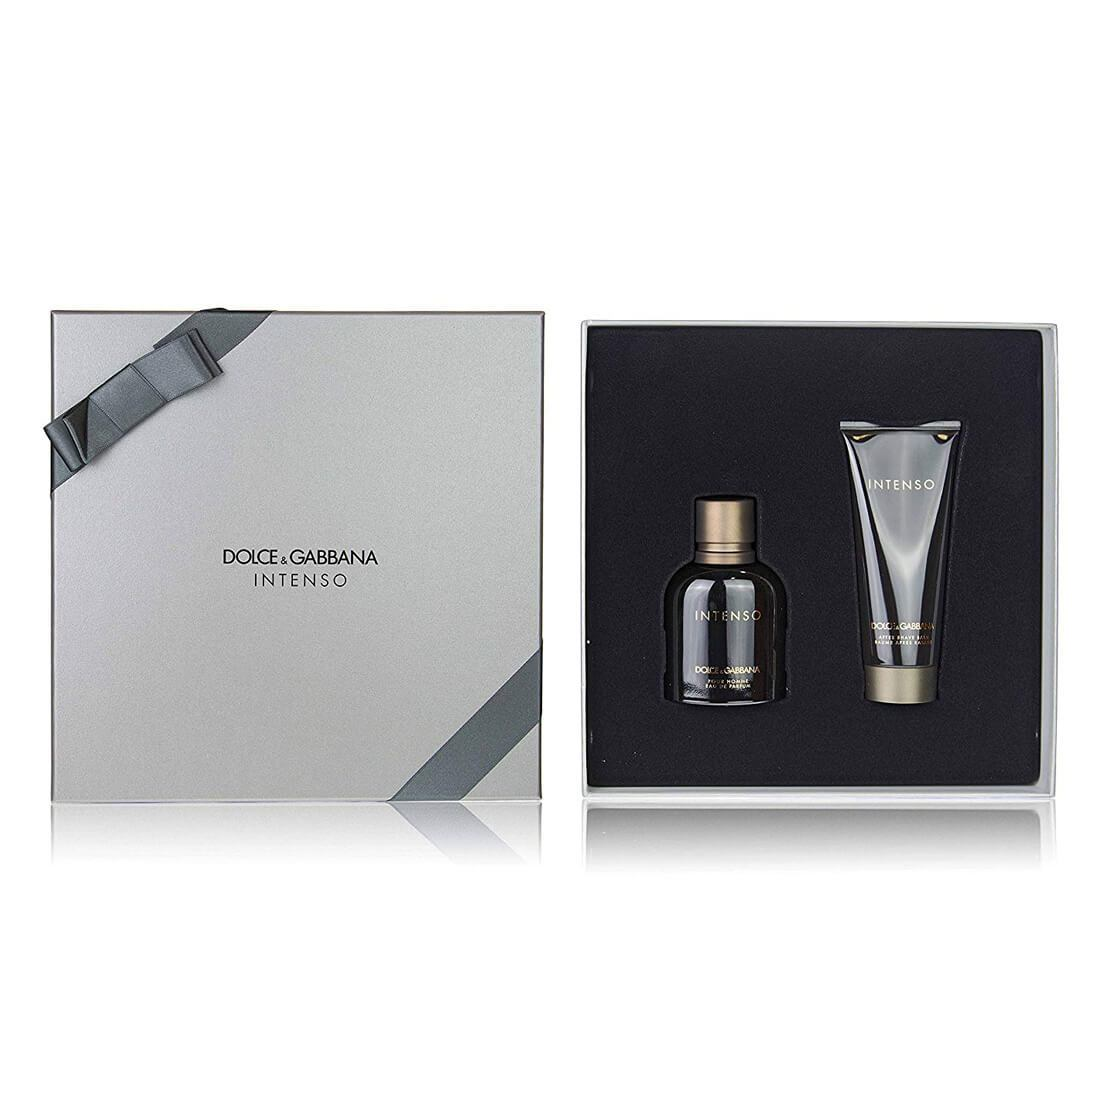 Dolce & Gabbana Pour Homme Intenso For Men Gift Set